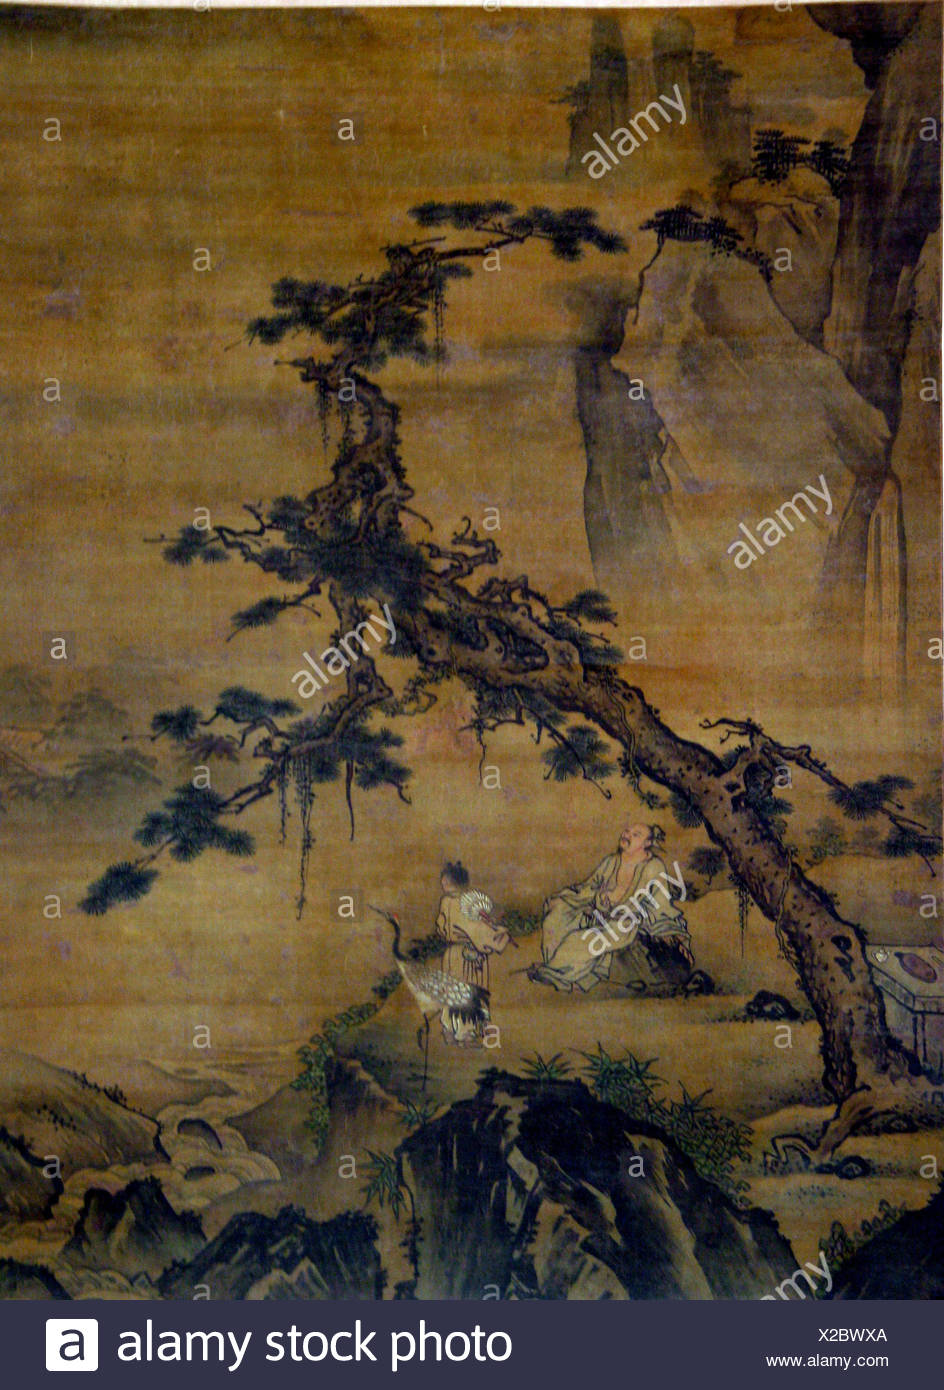 Scholar and Attendant in Mountain Retreat. Artist: Unidentified Artist; Period: Ming (1368-1644) or Qing (1644-1911) dynasty; Culture: China; Medium: - Stock Image